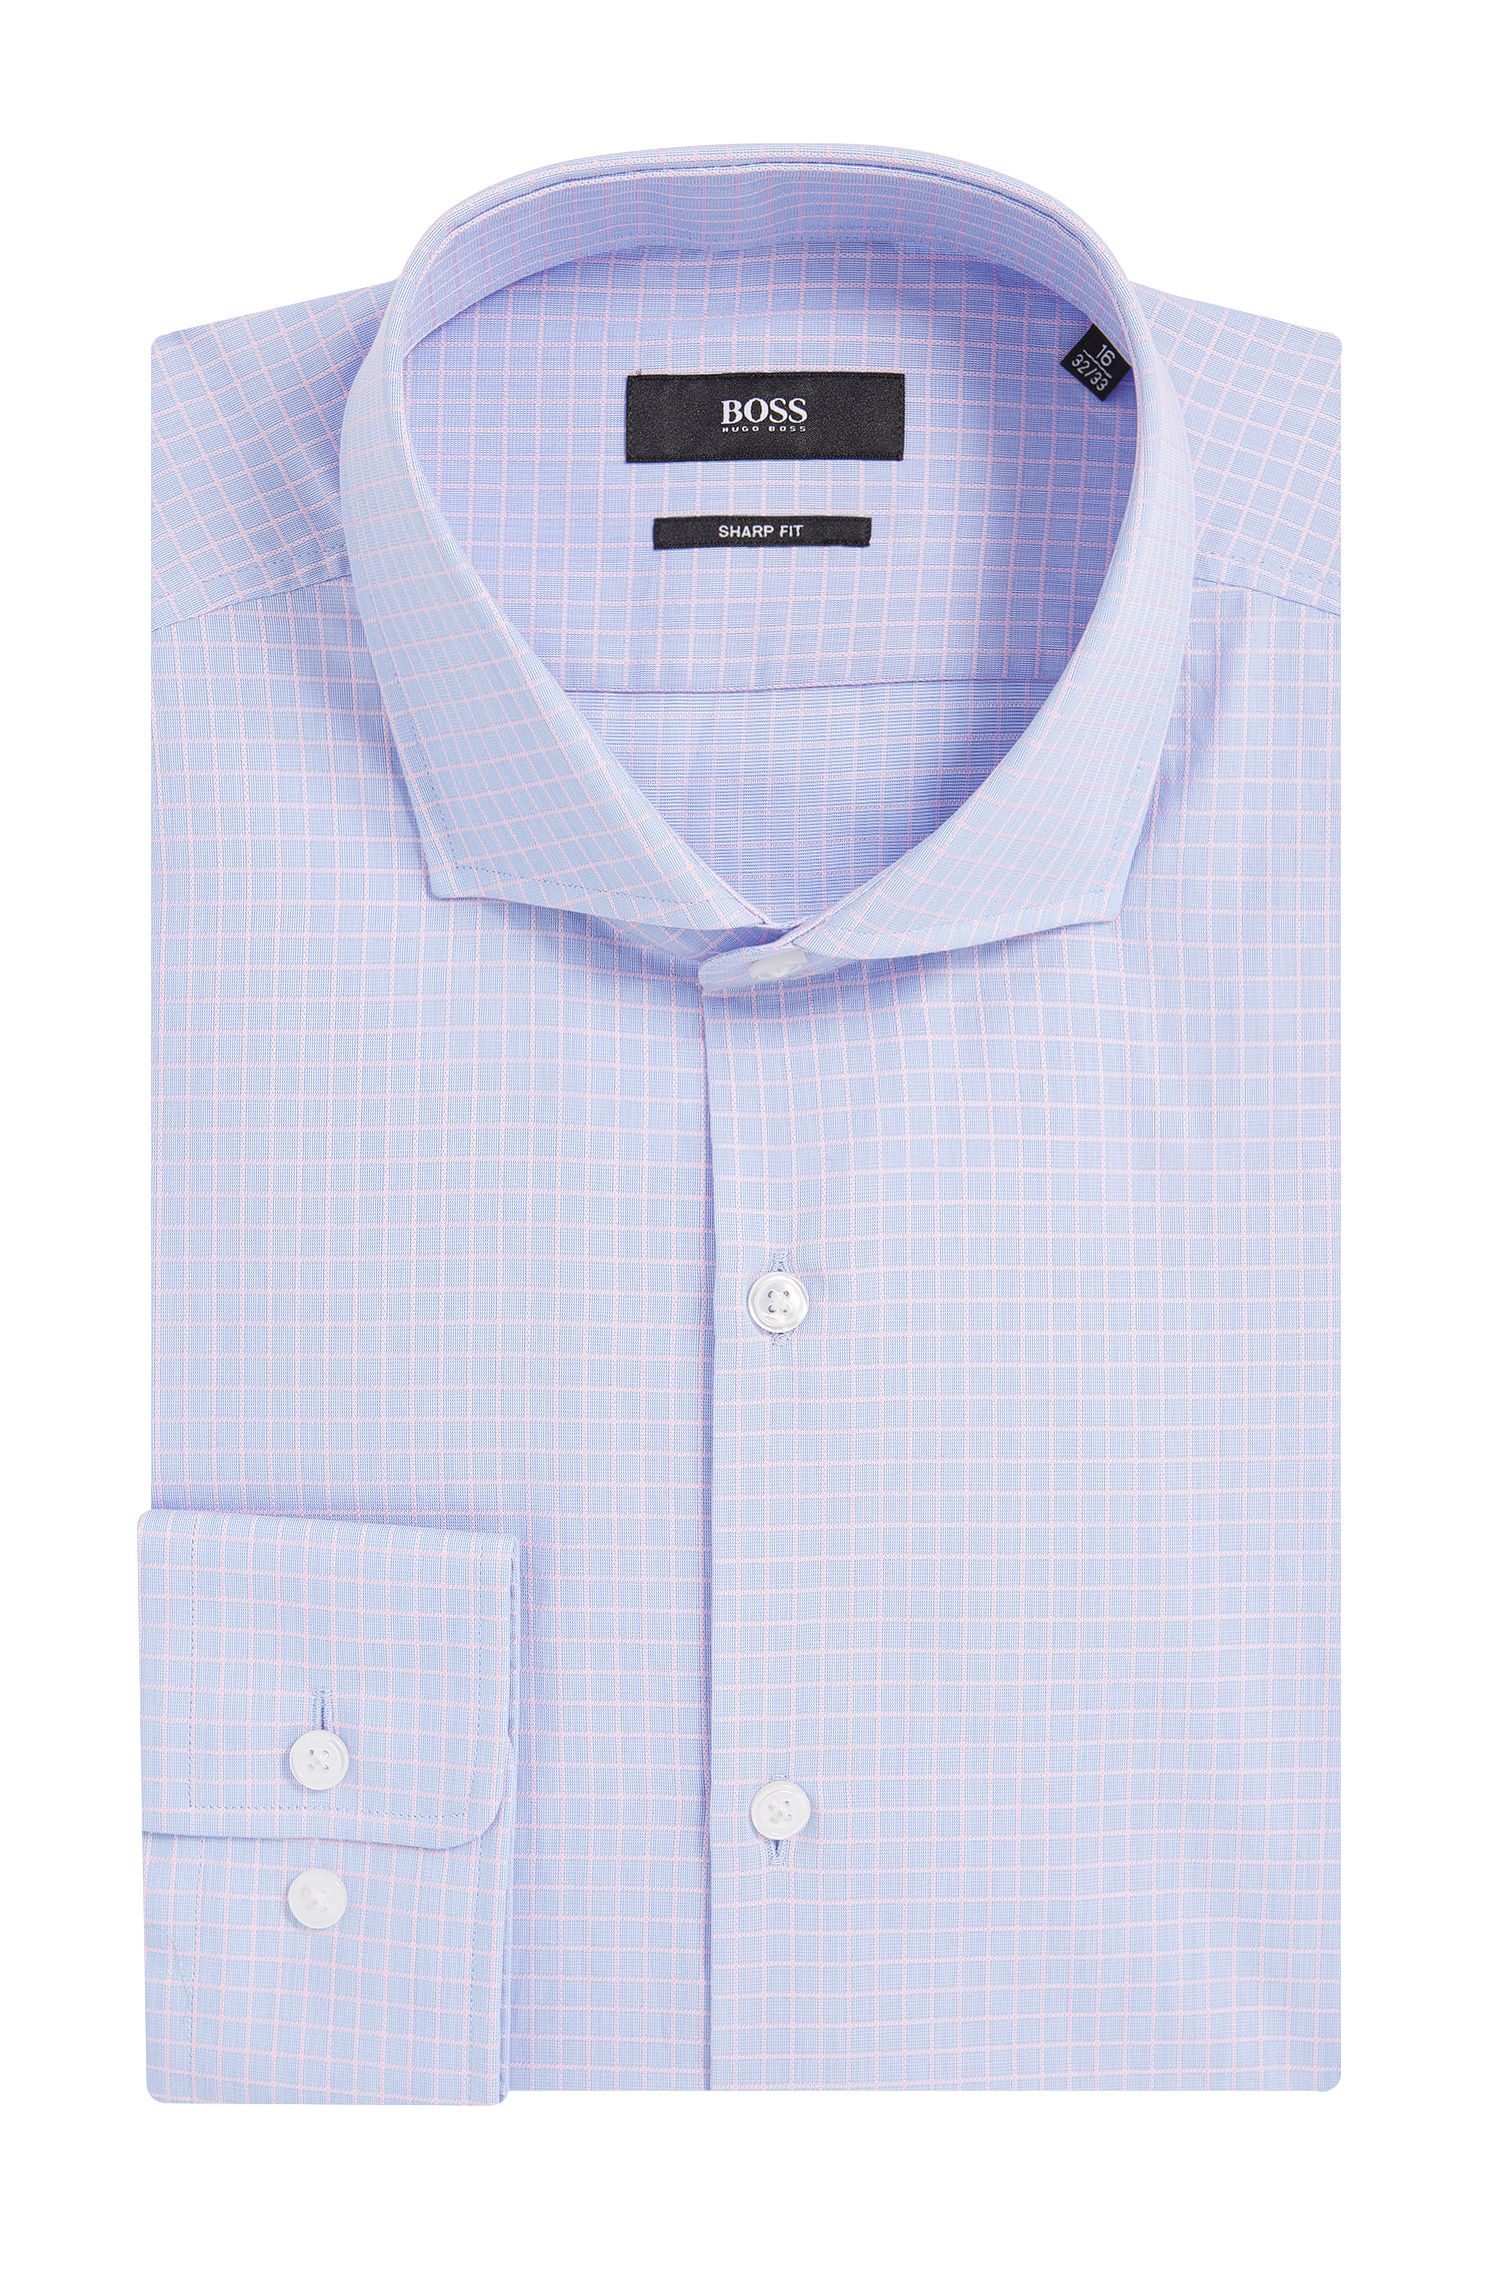 Windowpane Cotton Dress Shirt, Sharp Fit | Mark US, light pink